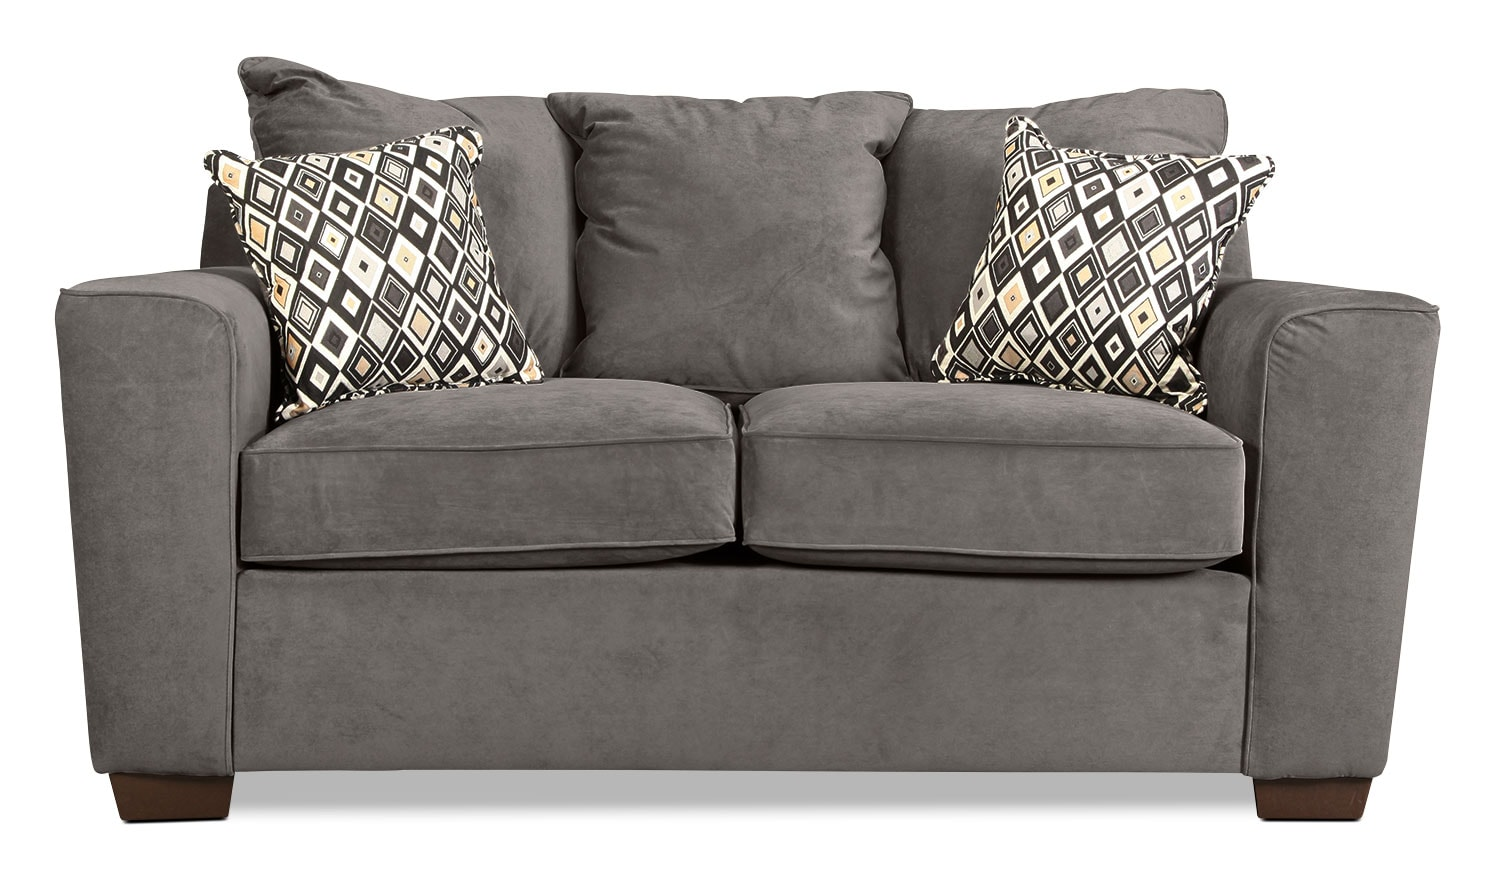 Diamond Loveseat - Gunsmoke